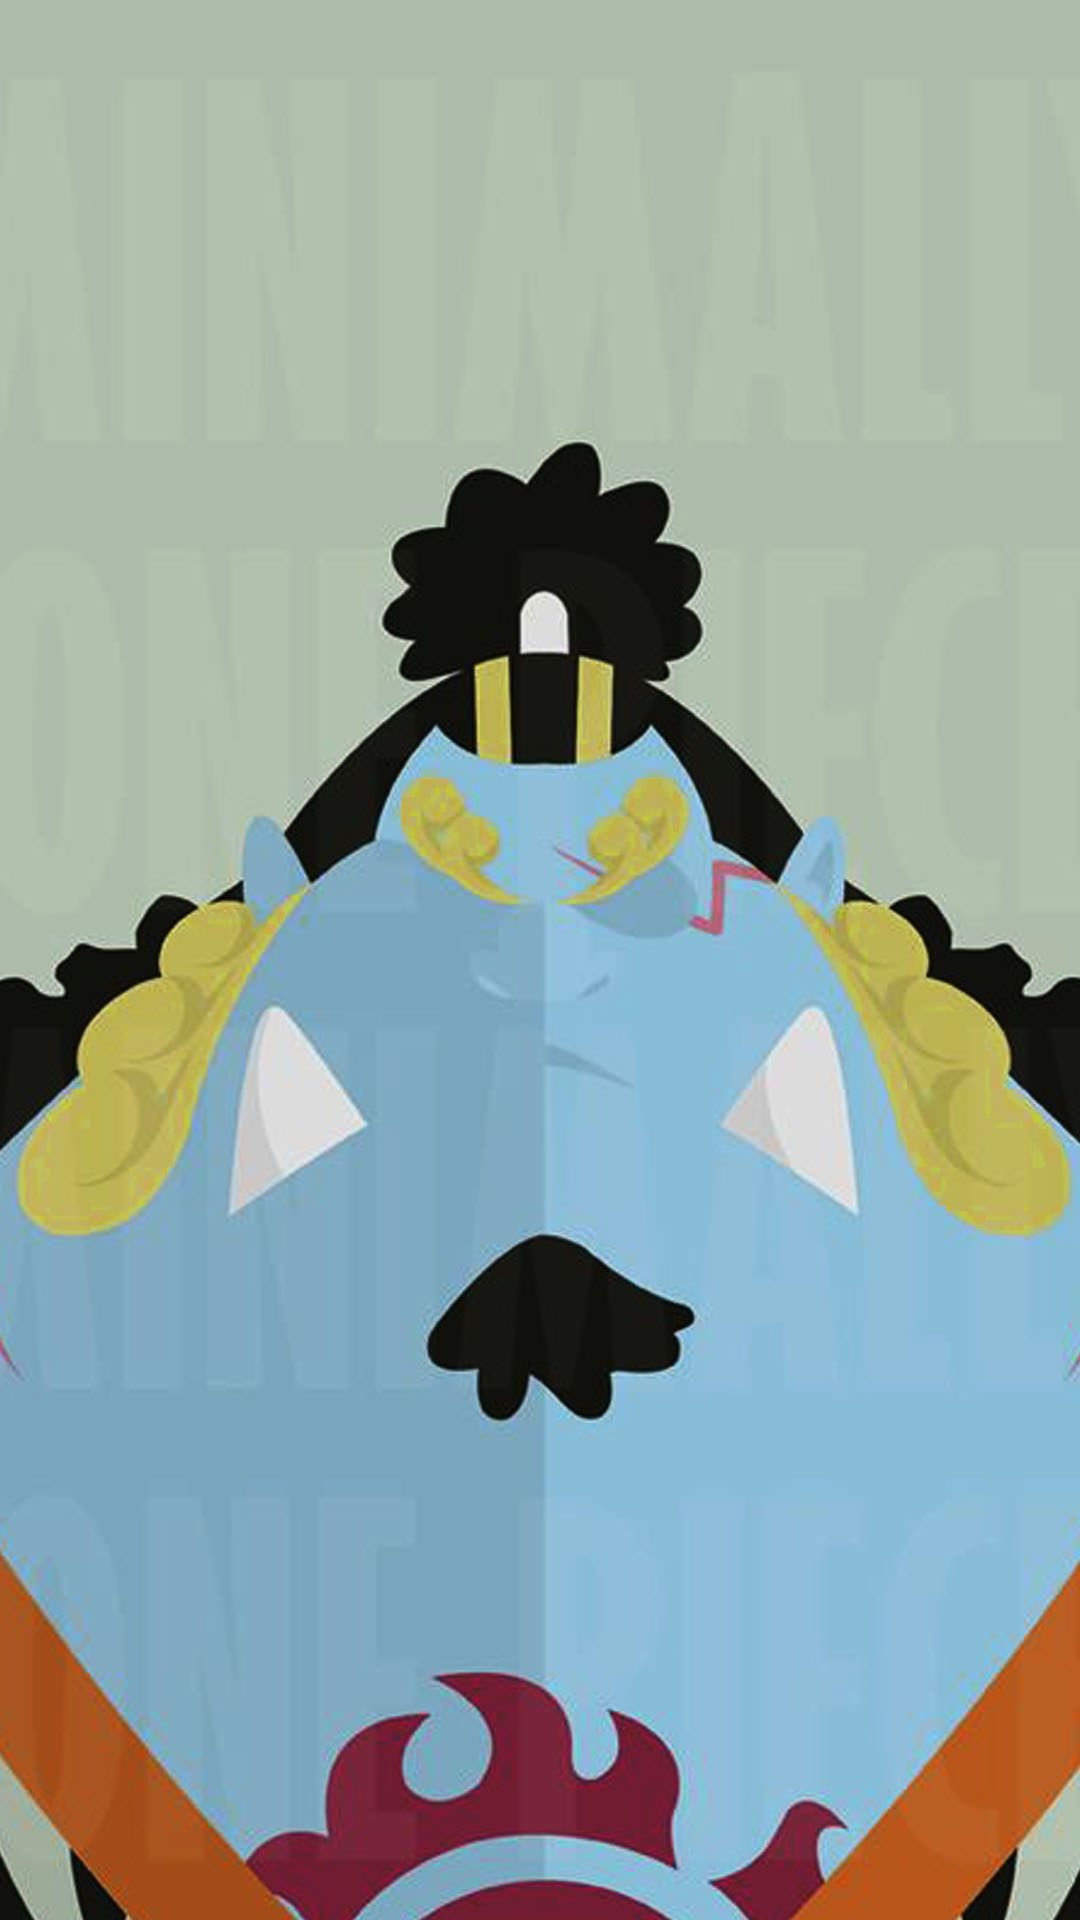 Jinbe Wallpaper 4 Anime One Piece Anime Icons